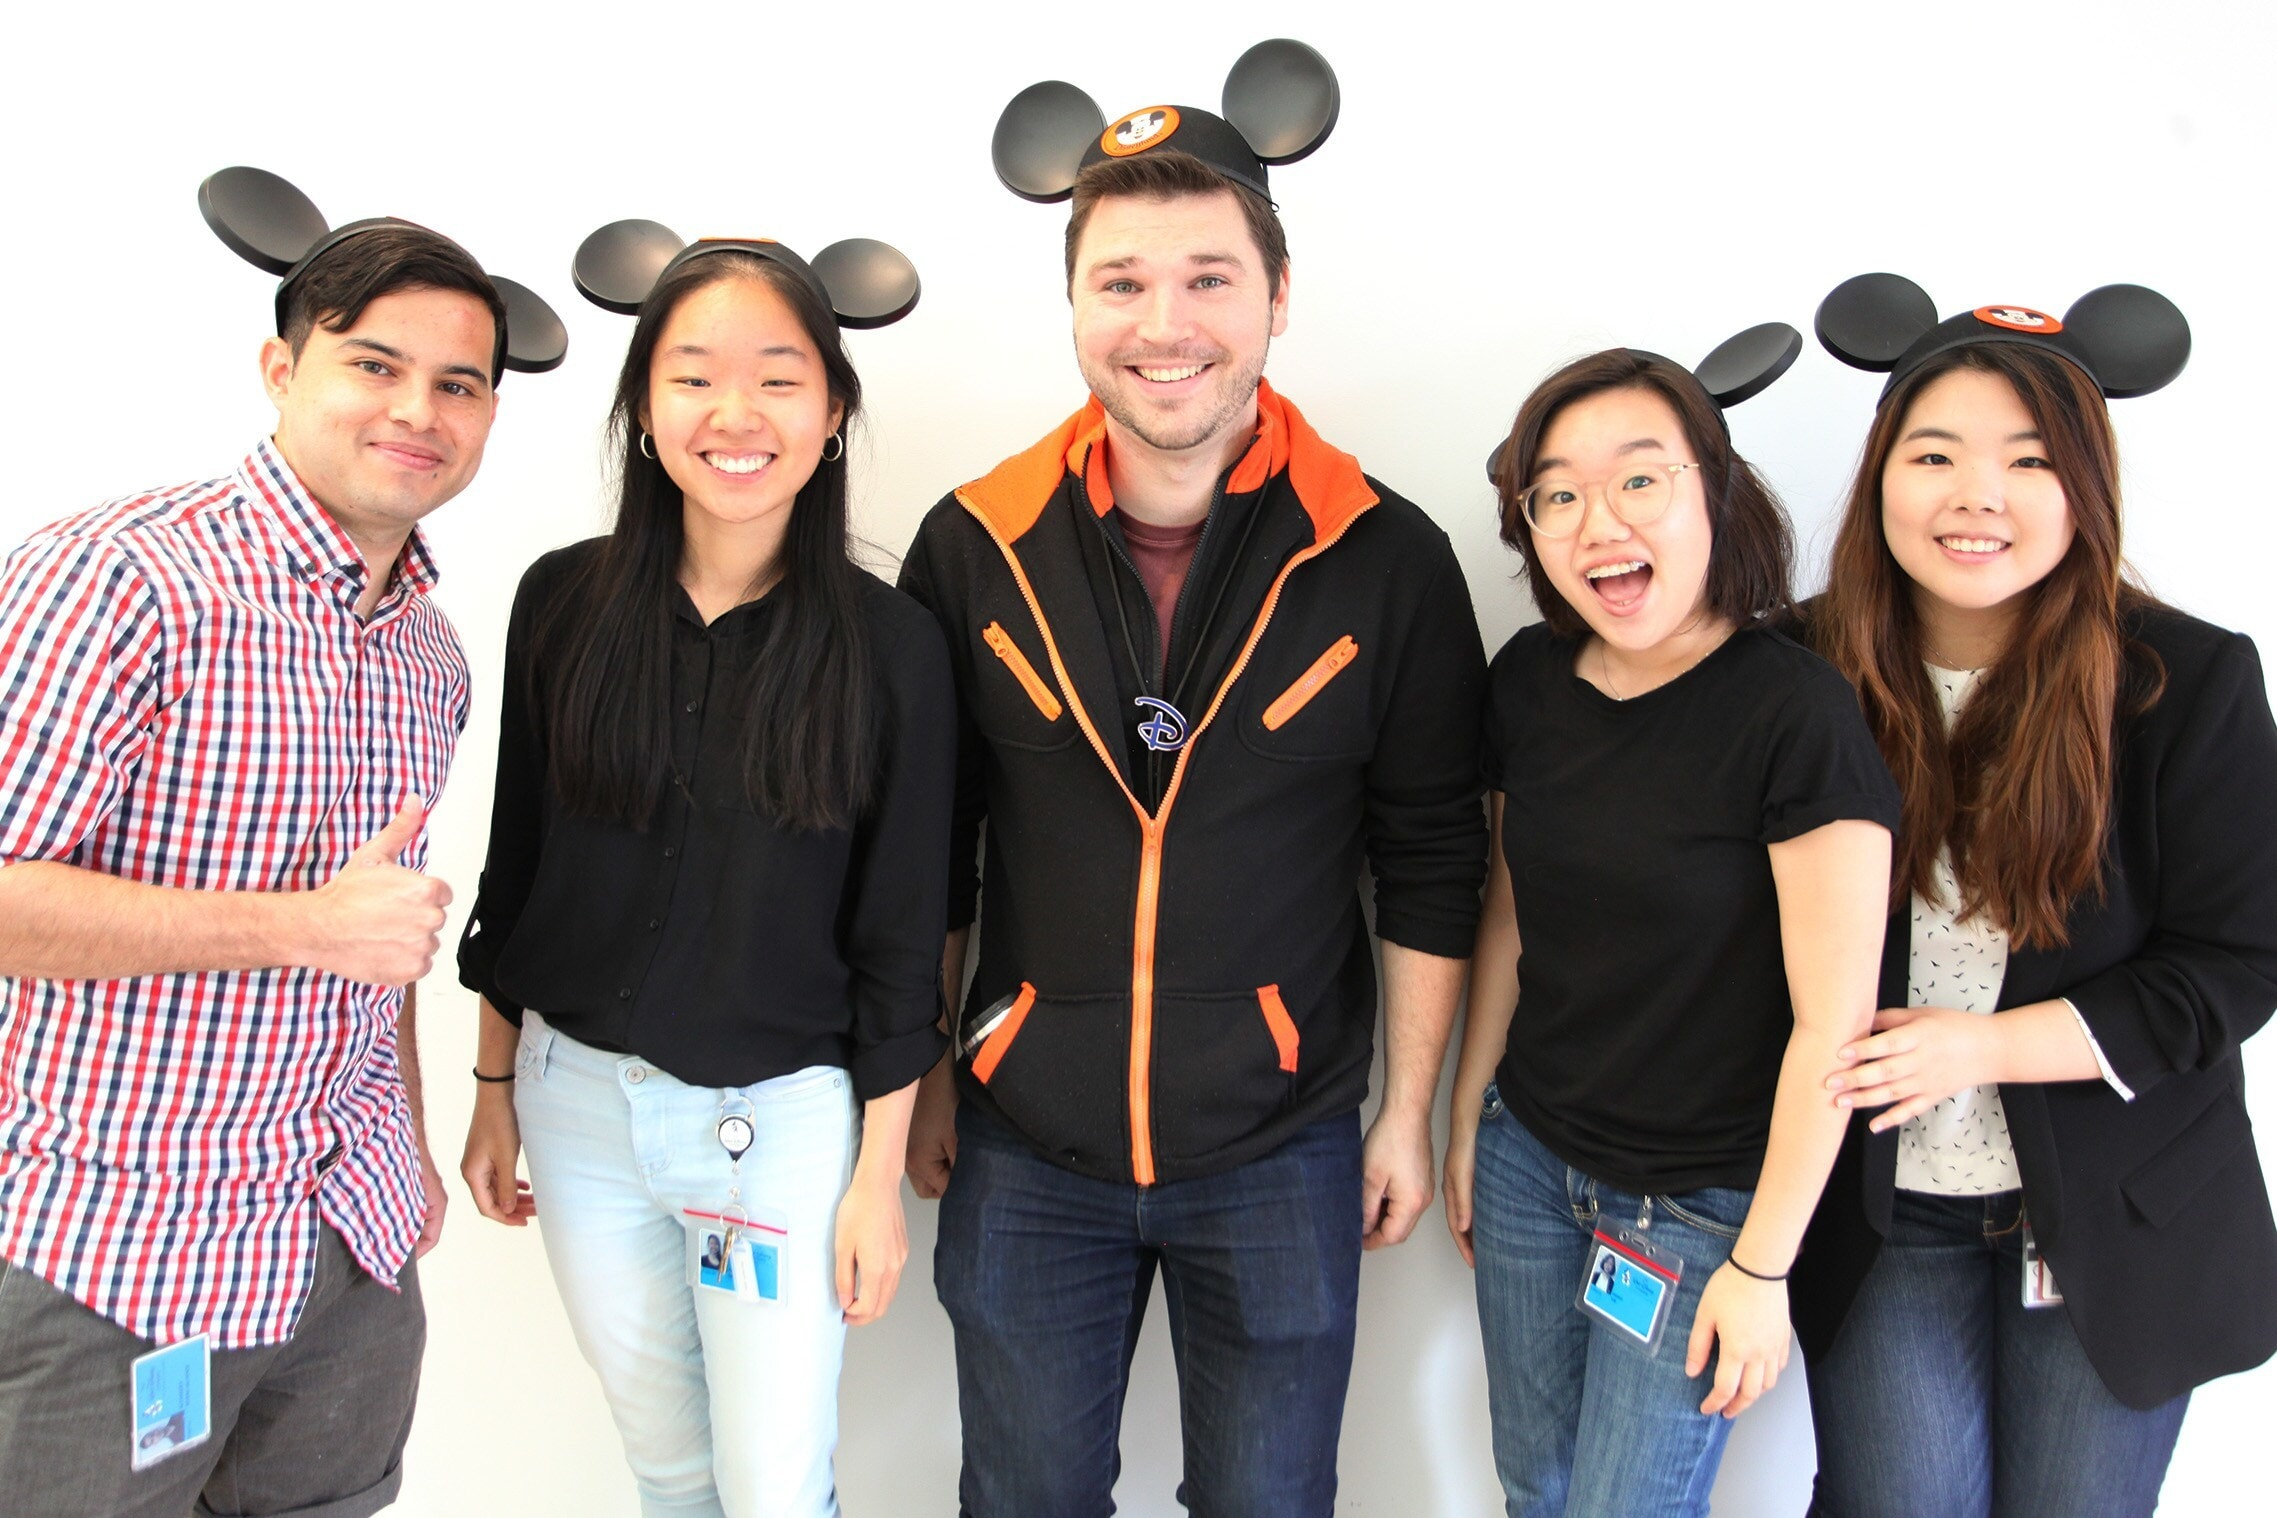 CG and Art Interns Alex Rivera, Felicia Chen, Casey Kelly, Hannah Kim, and Chrisy Baek.